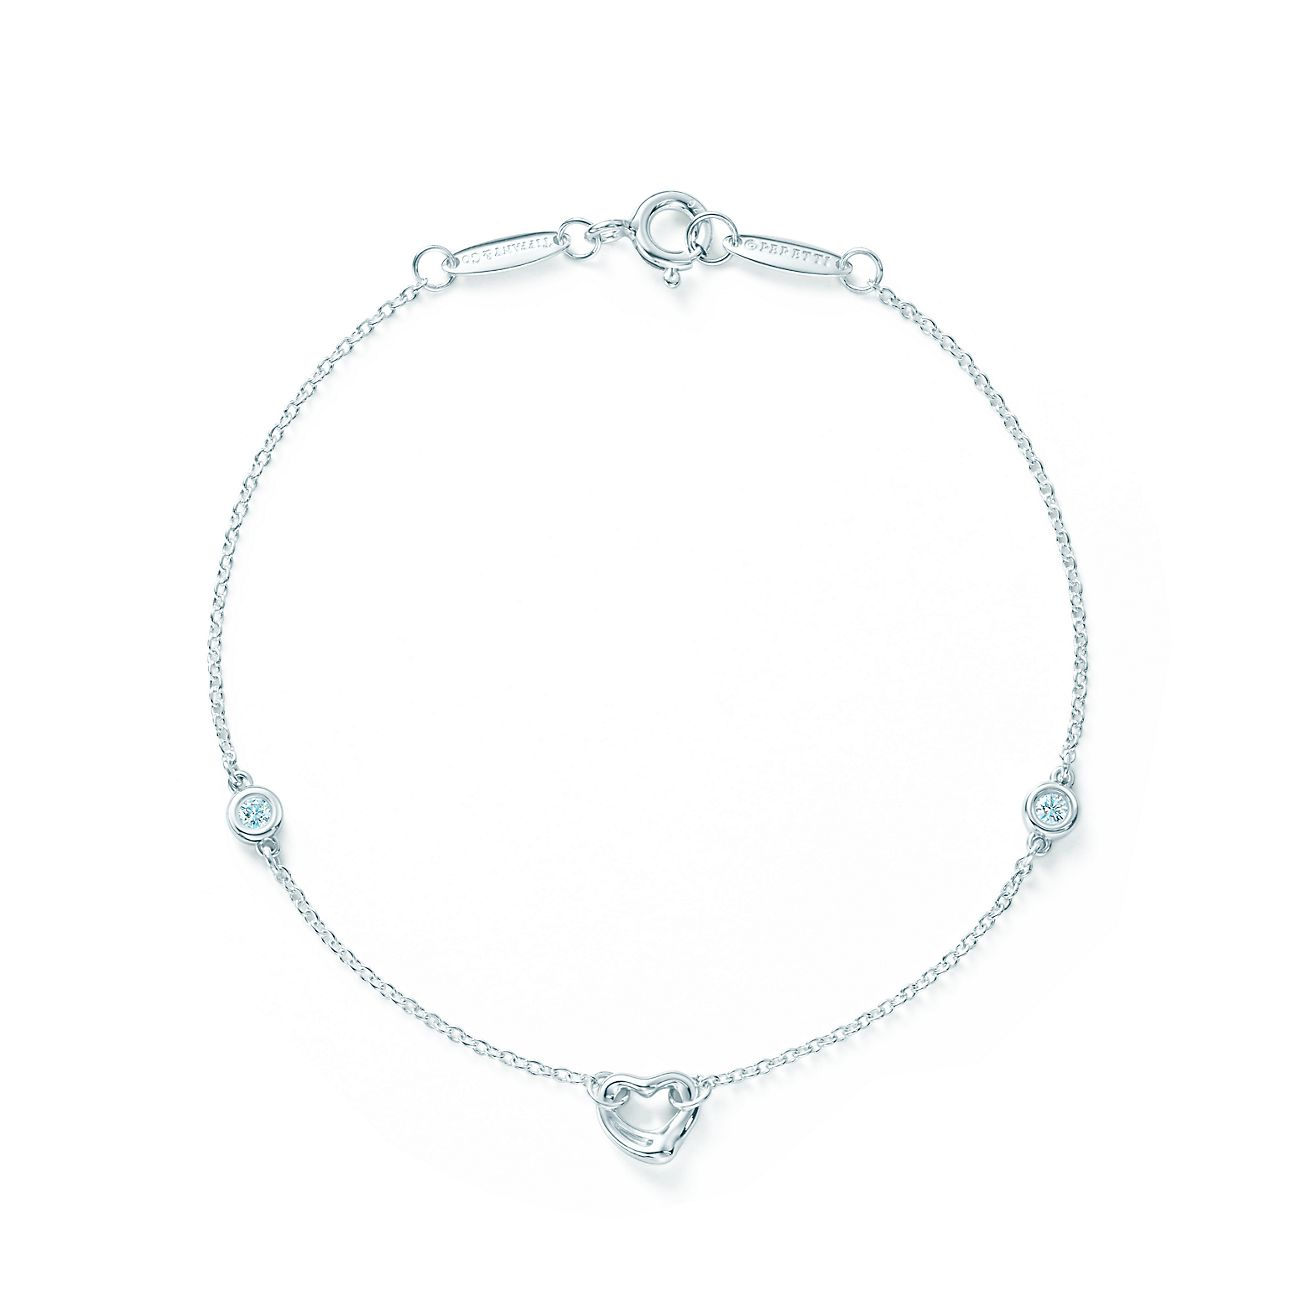 Elsa Peretti Diamonds by the Yard necklace in sterling silver Tiffany & Co.